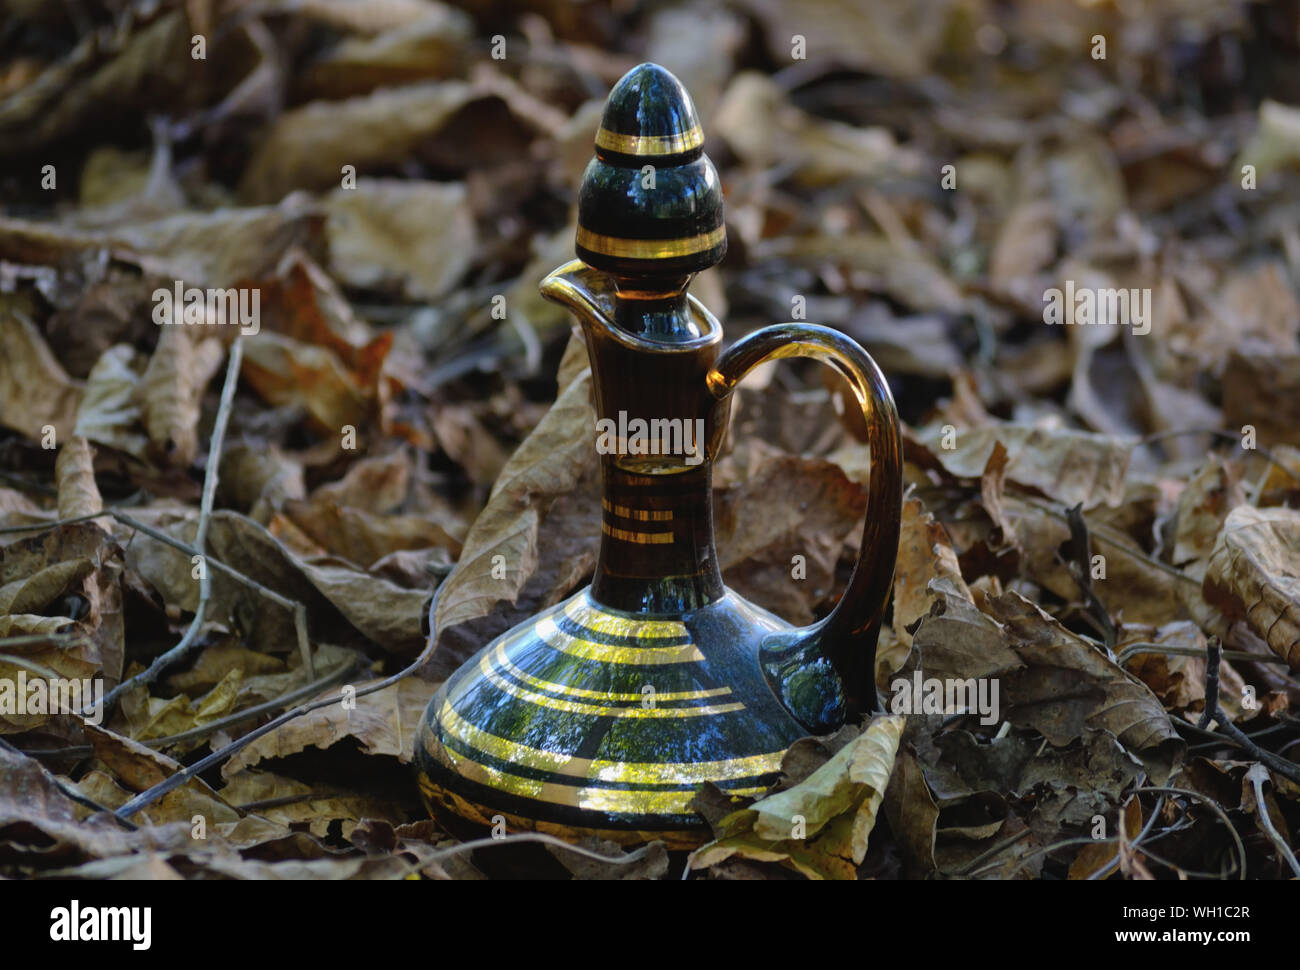 Traditional glass flagon on a fallen leaves Stock Photo